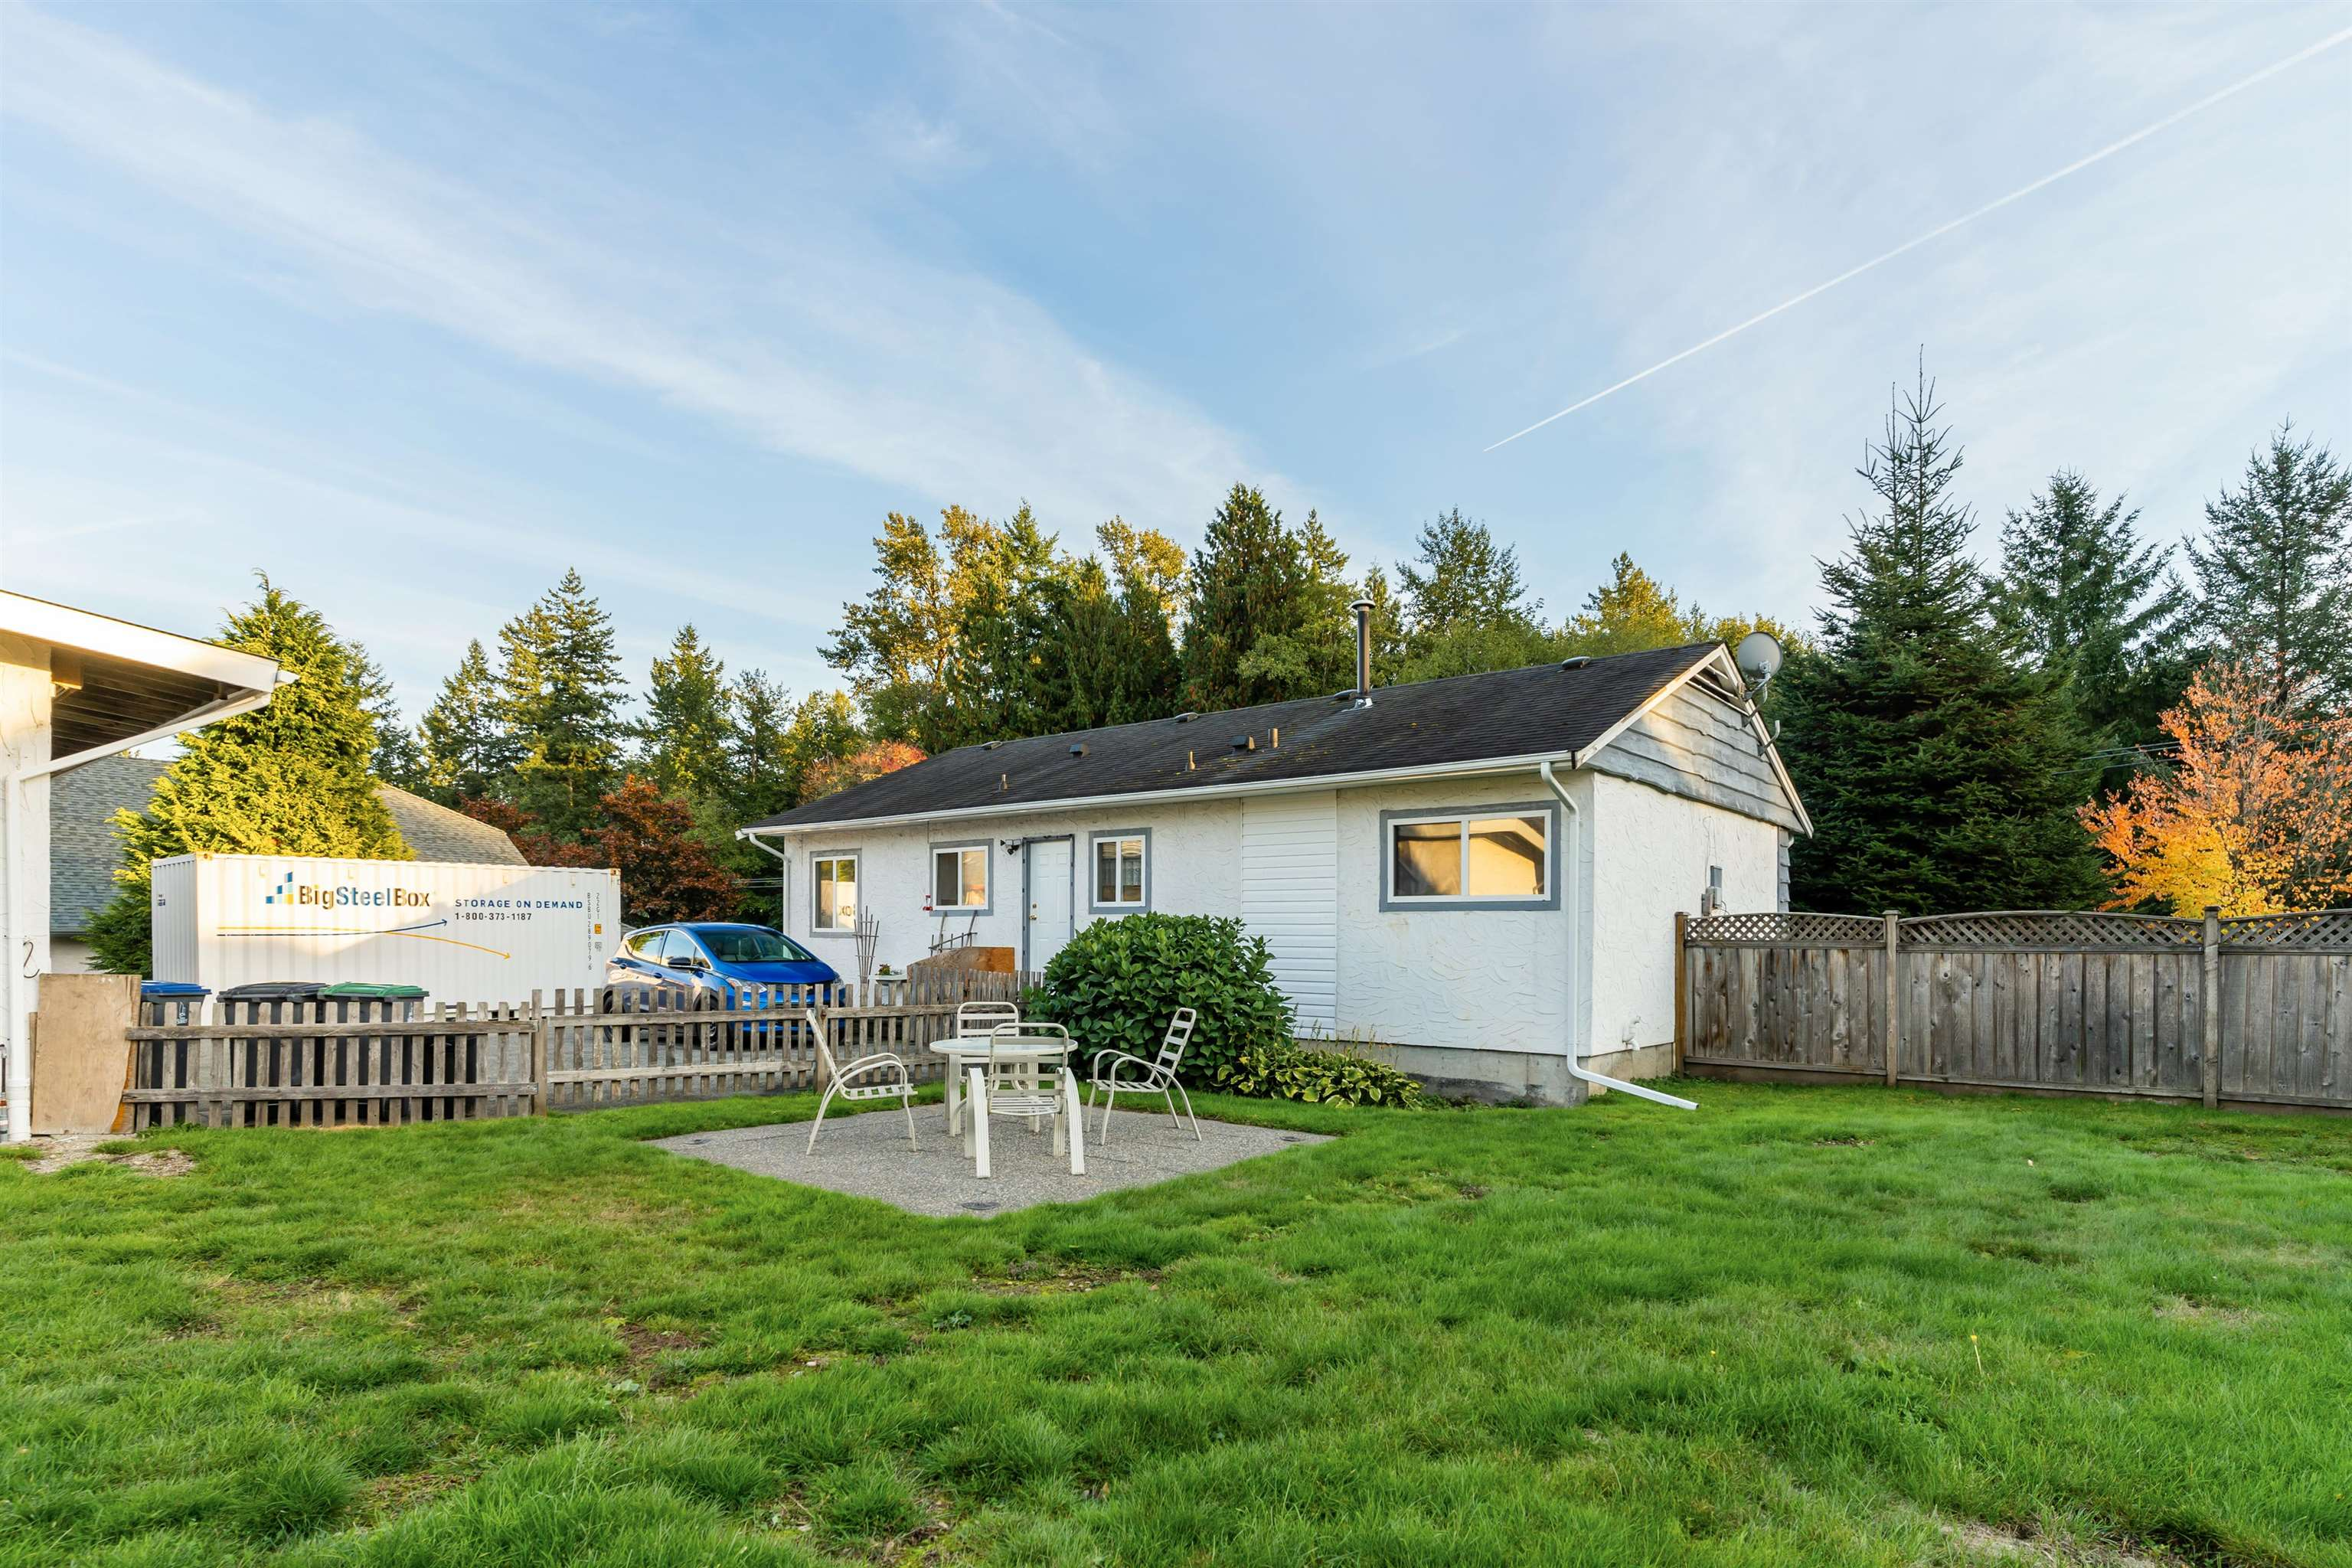 16527 84 AVENUE - Fleetwood Tynehead House/Single Family for sale, 2 Bedrooms (R2625496) - #28